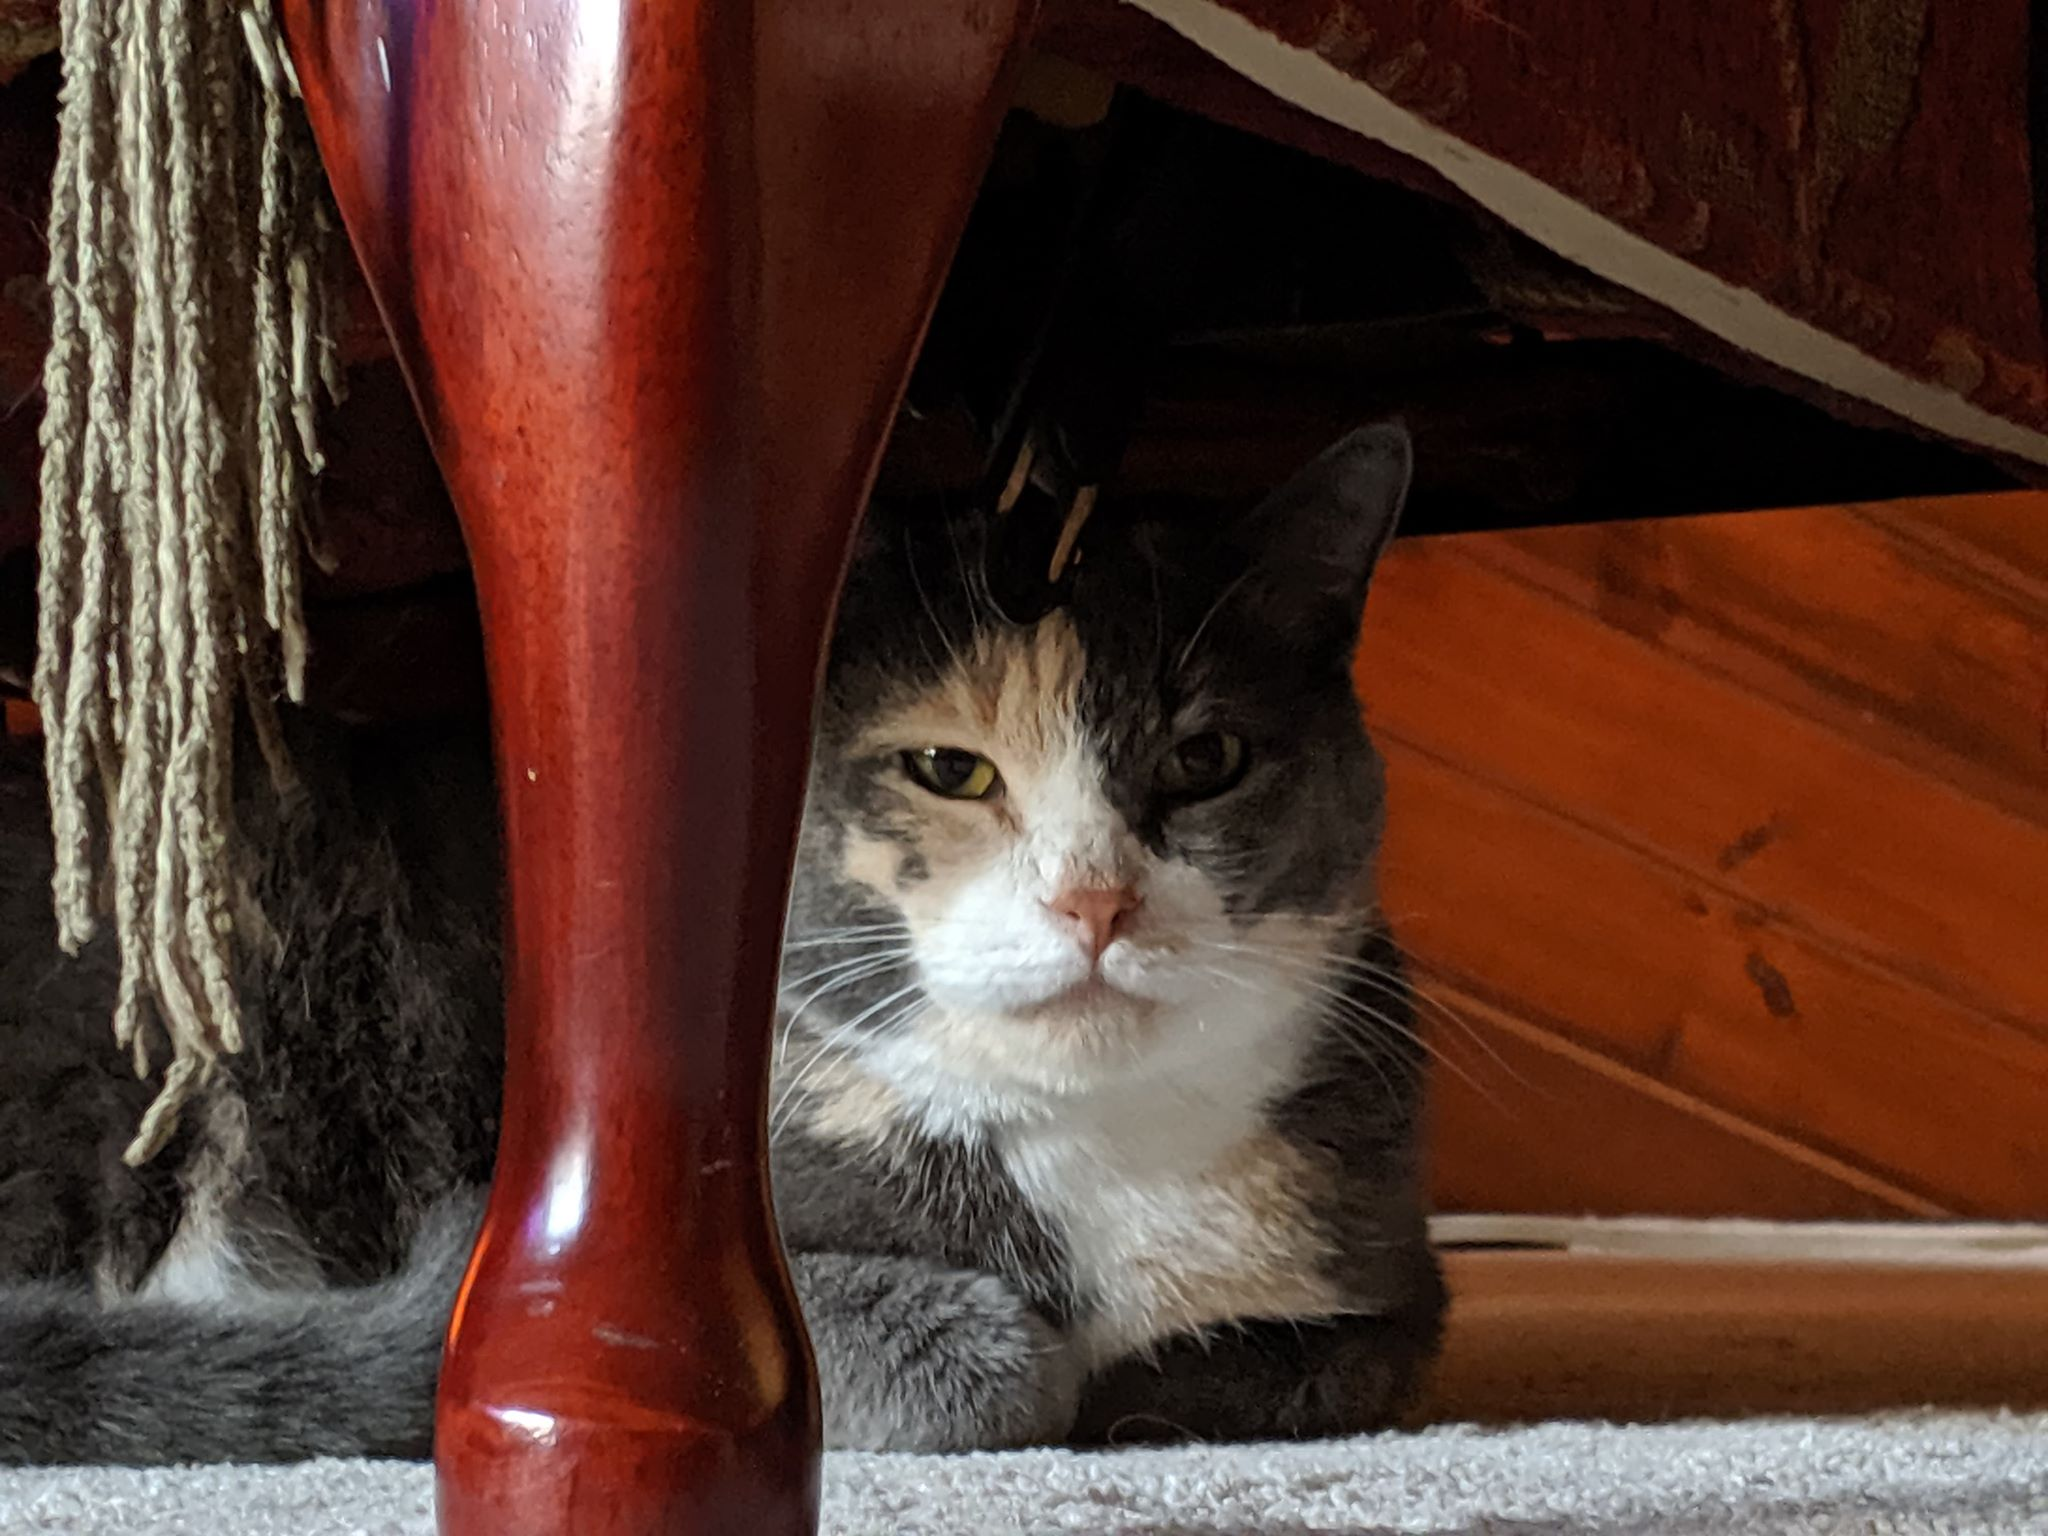 Peppernut under chair